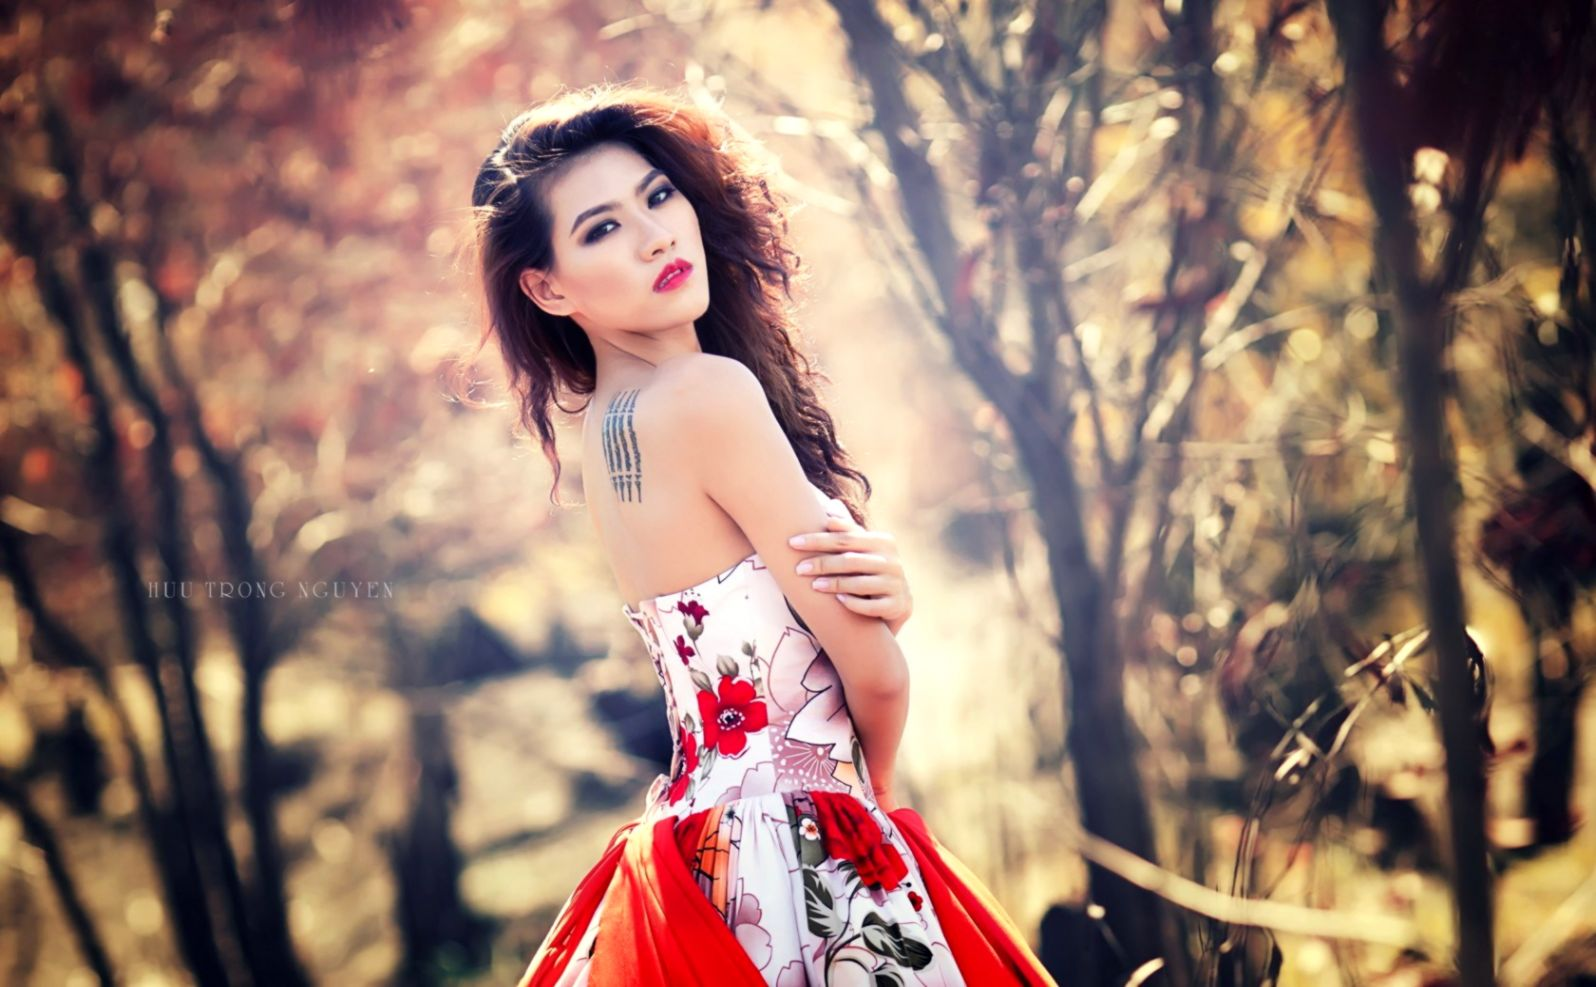 Beauty Model Asian Girl Bokeh Hd Wallpaper | Top Wallpapers